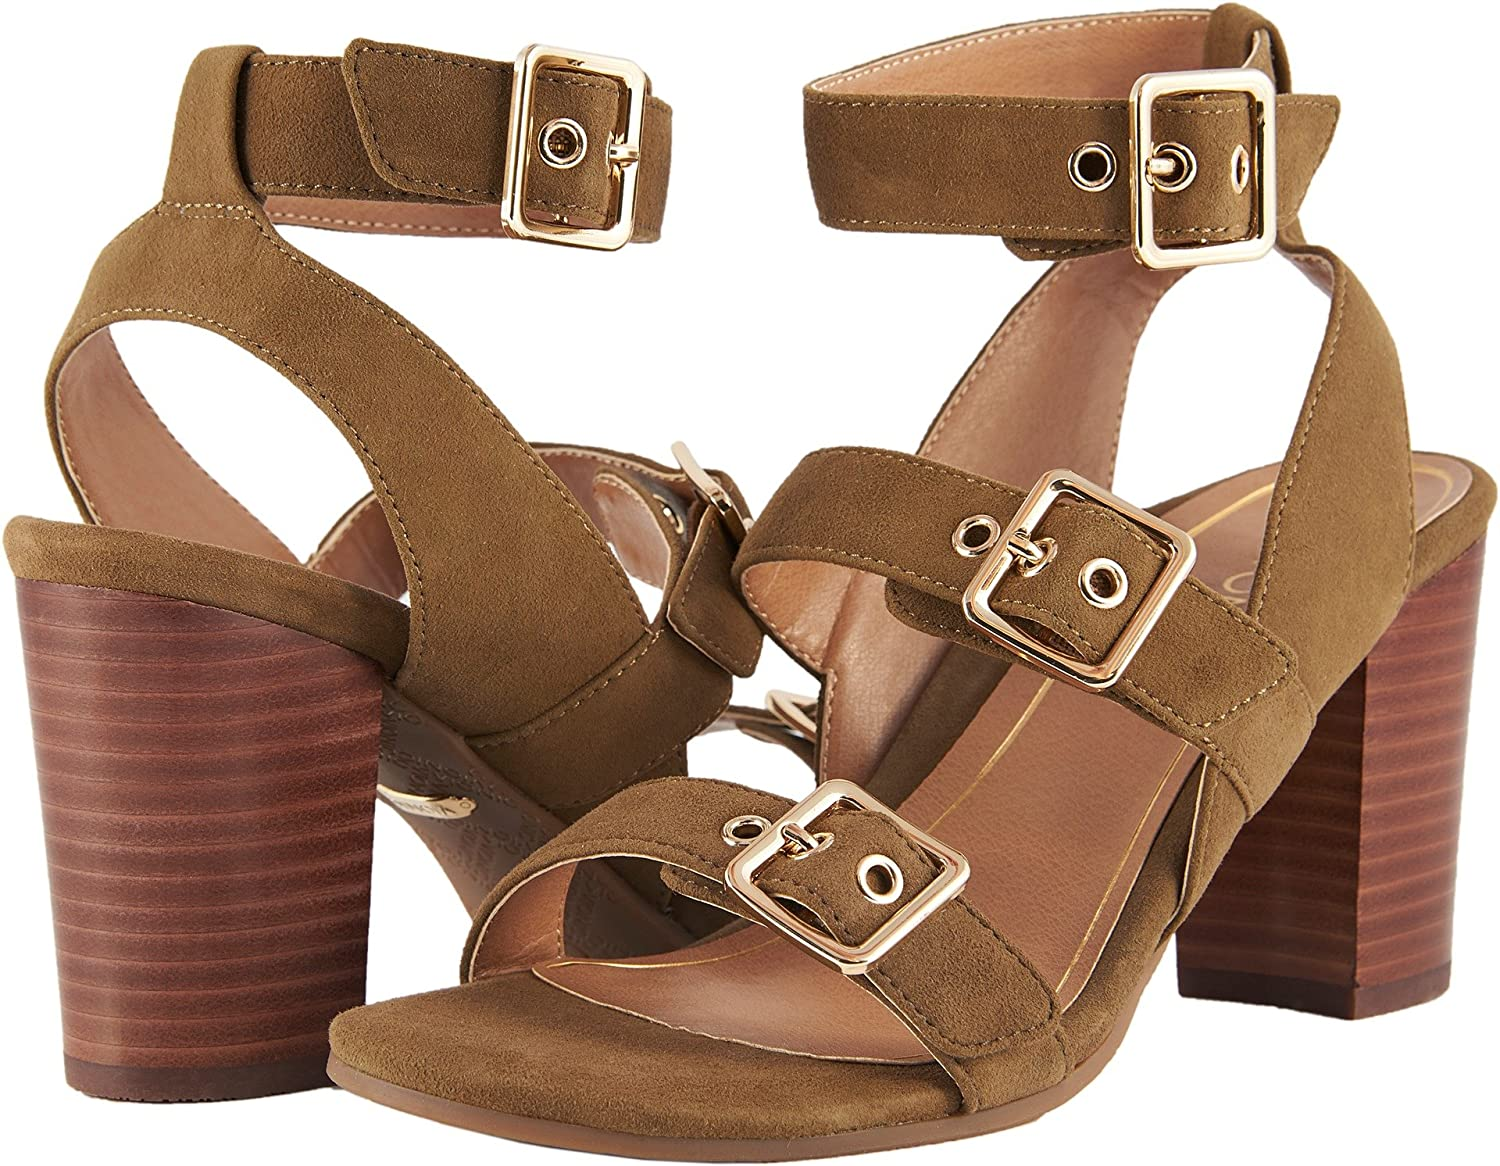 a2e4bf6c91bd Vionic Womens Perk Carmel Backstrap Heel Sandal  Amazon.co.uk  Shoes   Bags